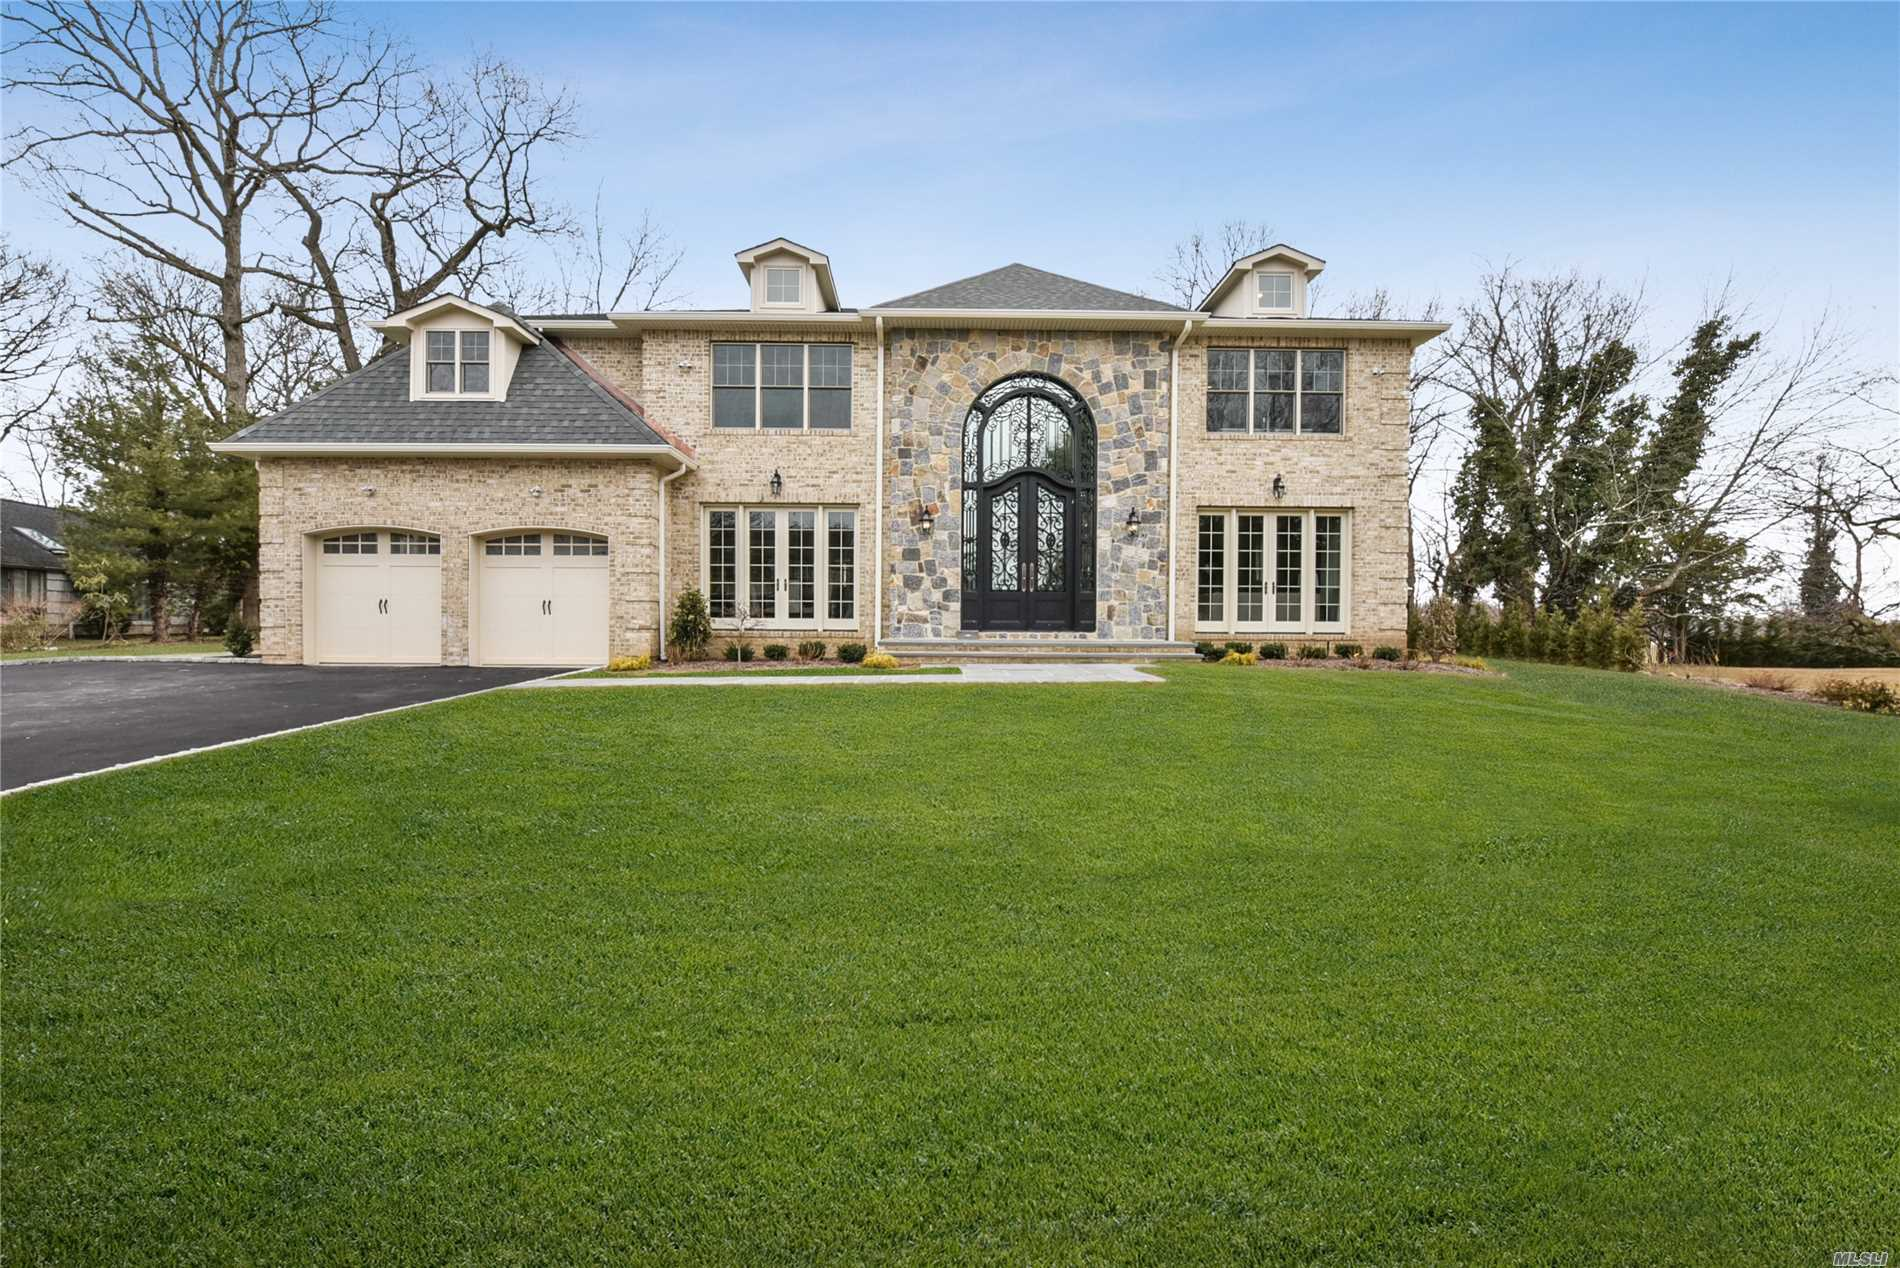 Stunning And Elegant 5175 Sq. Ft. Palatial Mansion Set On Beautifully Sprawling Landscaped Prop In Des Roslyn Cc. Once In A Rare While Will A Home Of This Magnitude Steeped In Lux And Glorious Design Will Appear On The Real Estate Scene. Built Without Compromise, This 6 Bedroom, 6.5 Bath Home Reflects Only The Very Best. Boasts Exp Rooms, Colossal Front To Back Barrel Vault 2 Story Foyer With Captivating Gas Fpl, Custom Mill, Coff Ceiling, Gourmet Eik, Many Upgrades. For Those Who Seek The Best!